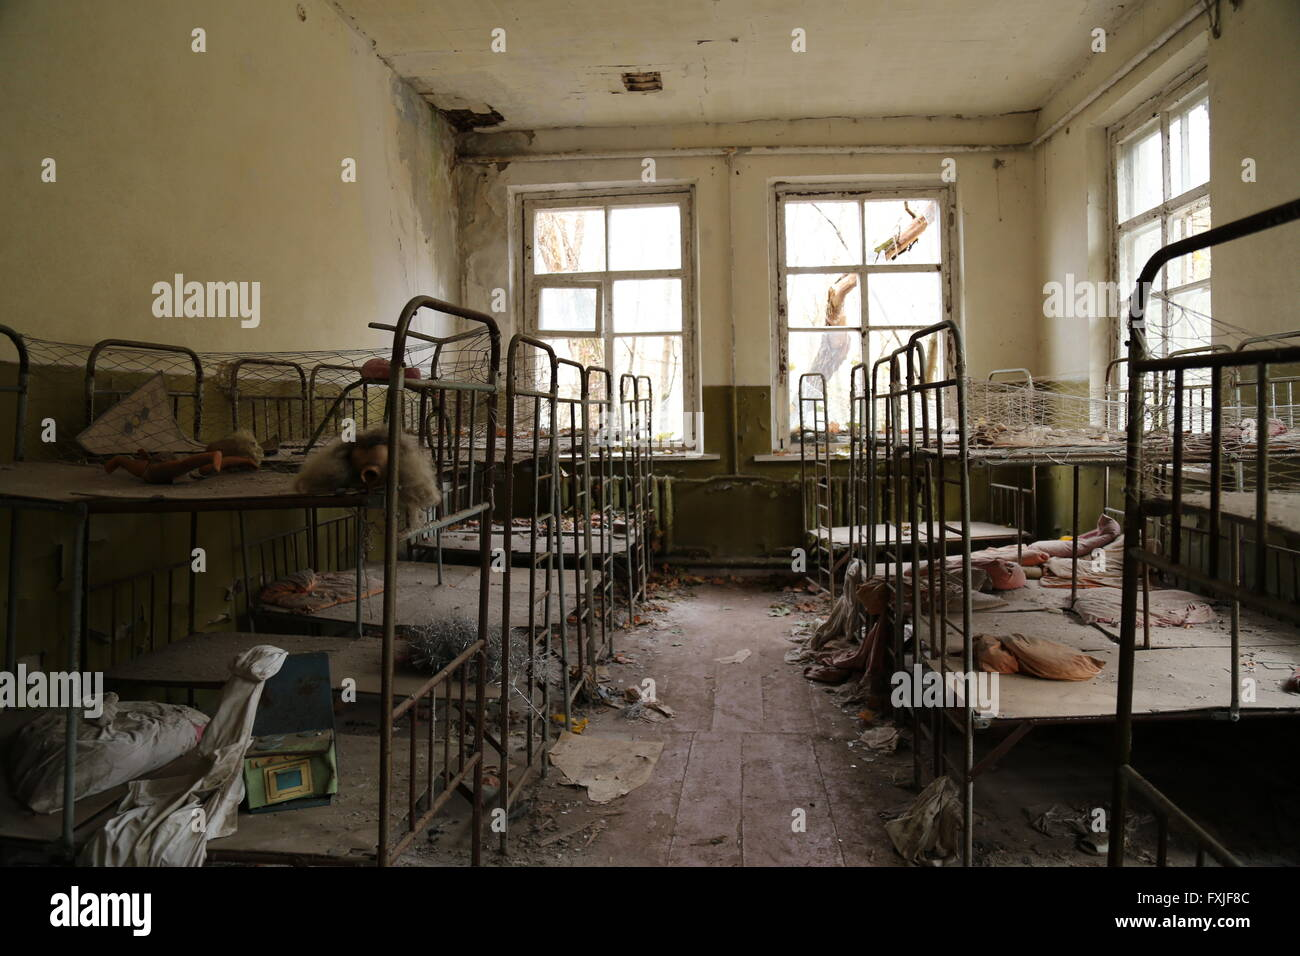 Nursery, just outside of Chernobyl, Ukraine - Stock Image